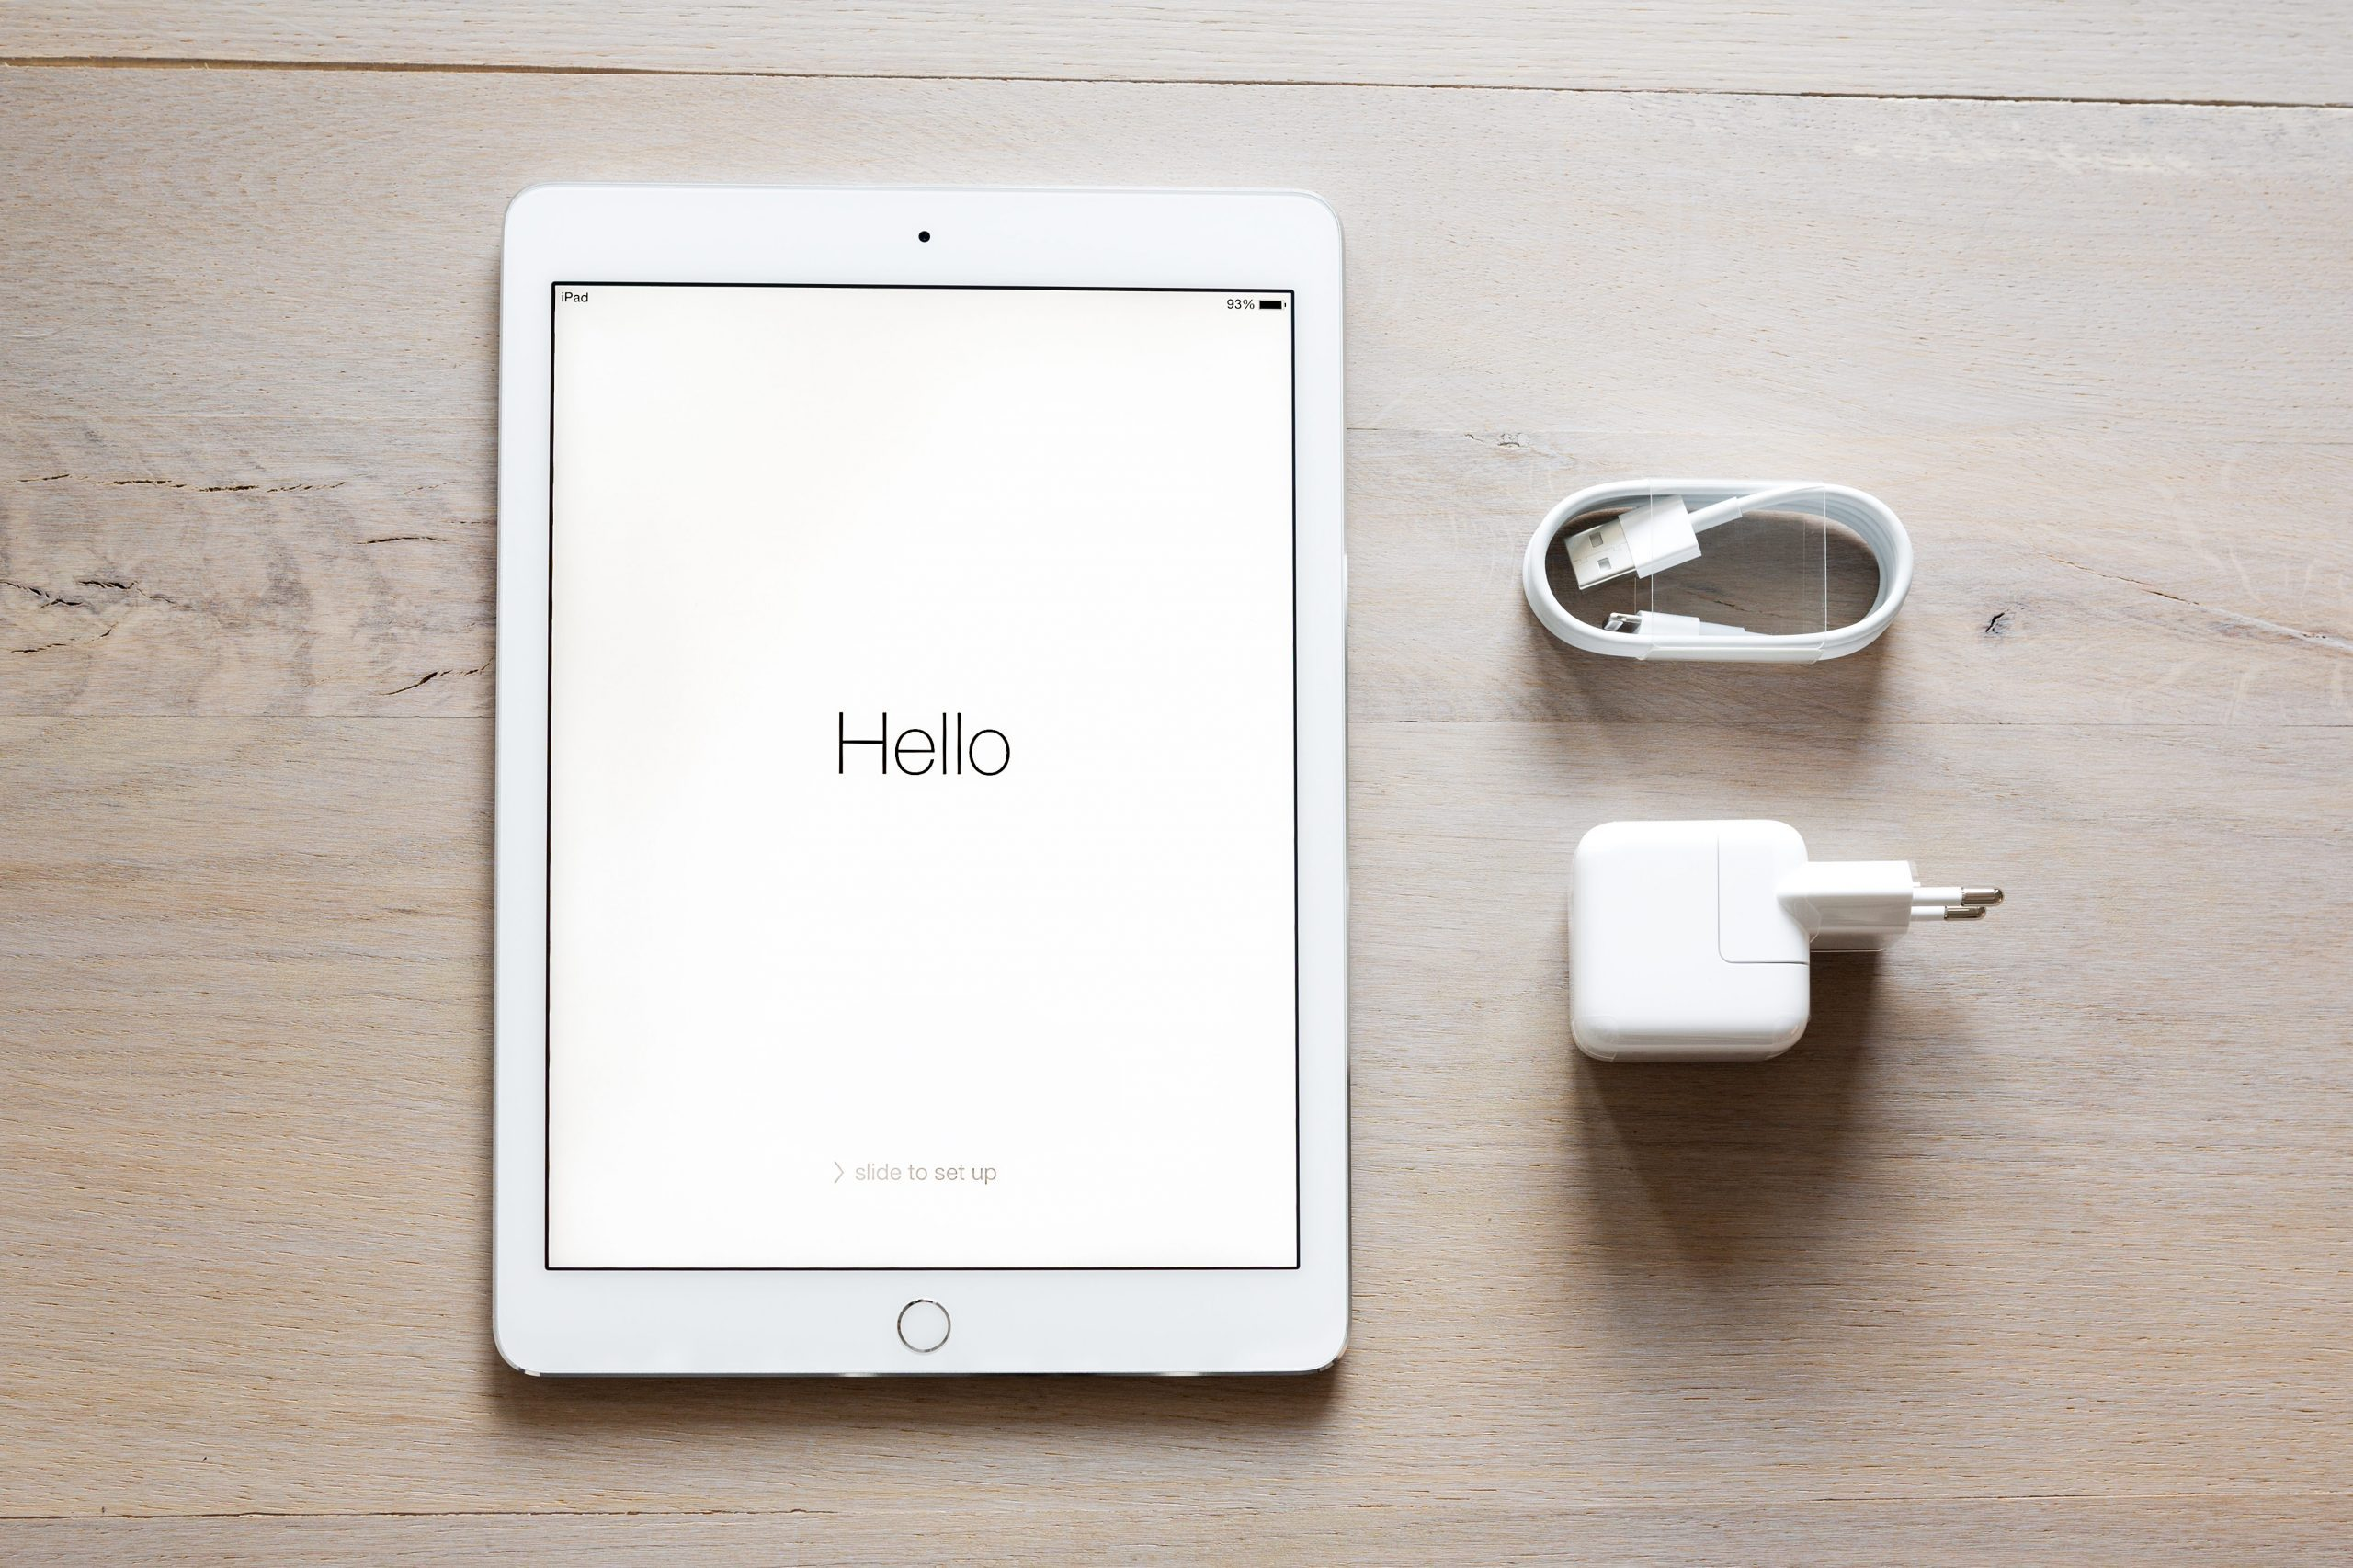 Overhead shot of an iPad Air 2 Silver showing welcome screen, USB cable and power adapter. Unboxed new iPad Air 2 (before activation) on a wooden background.